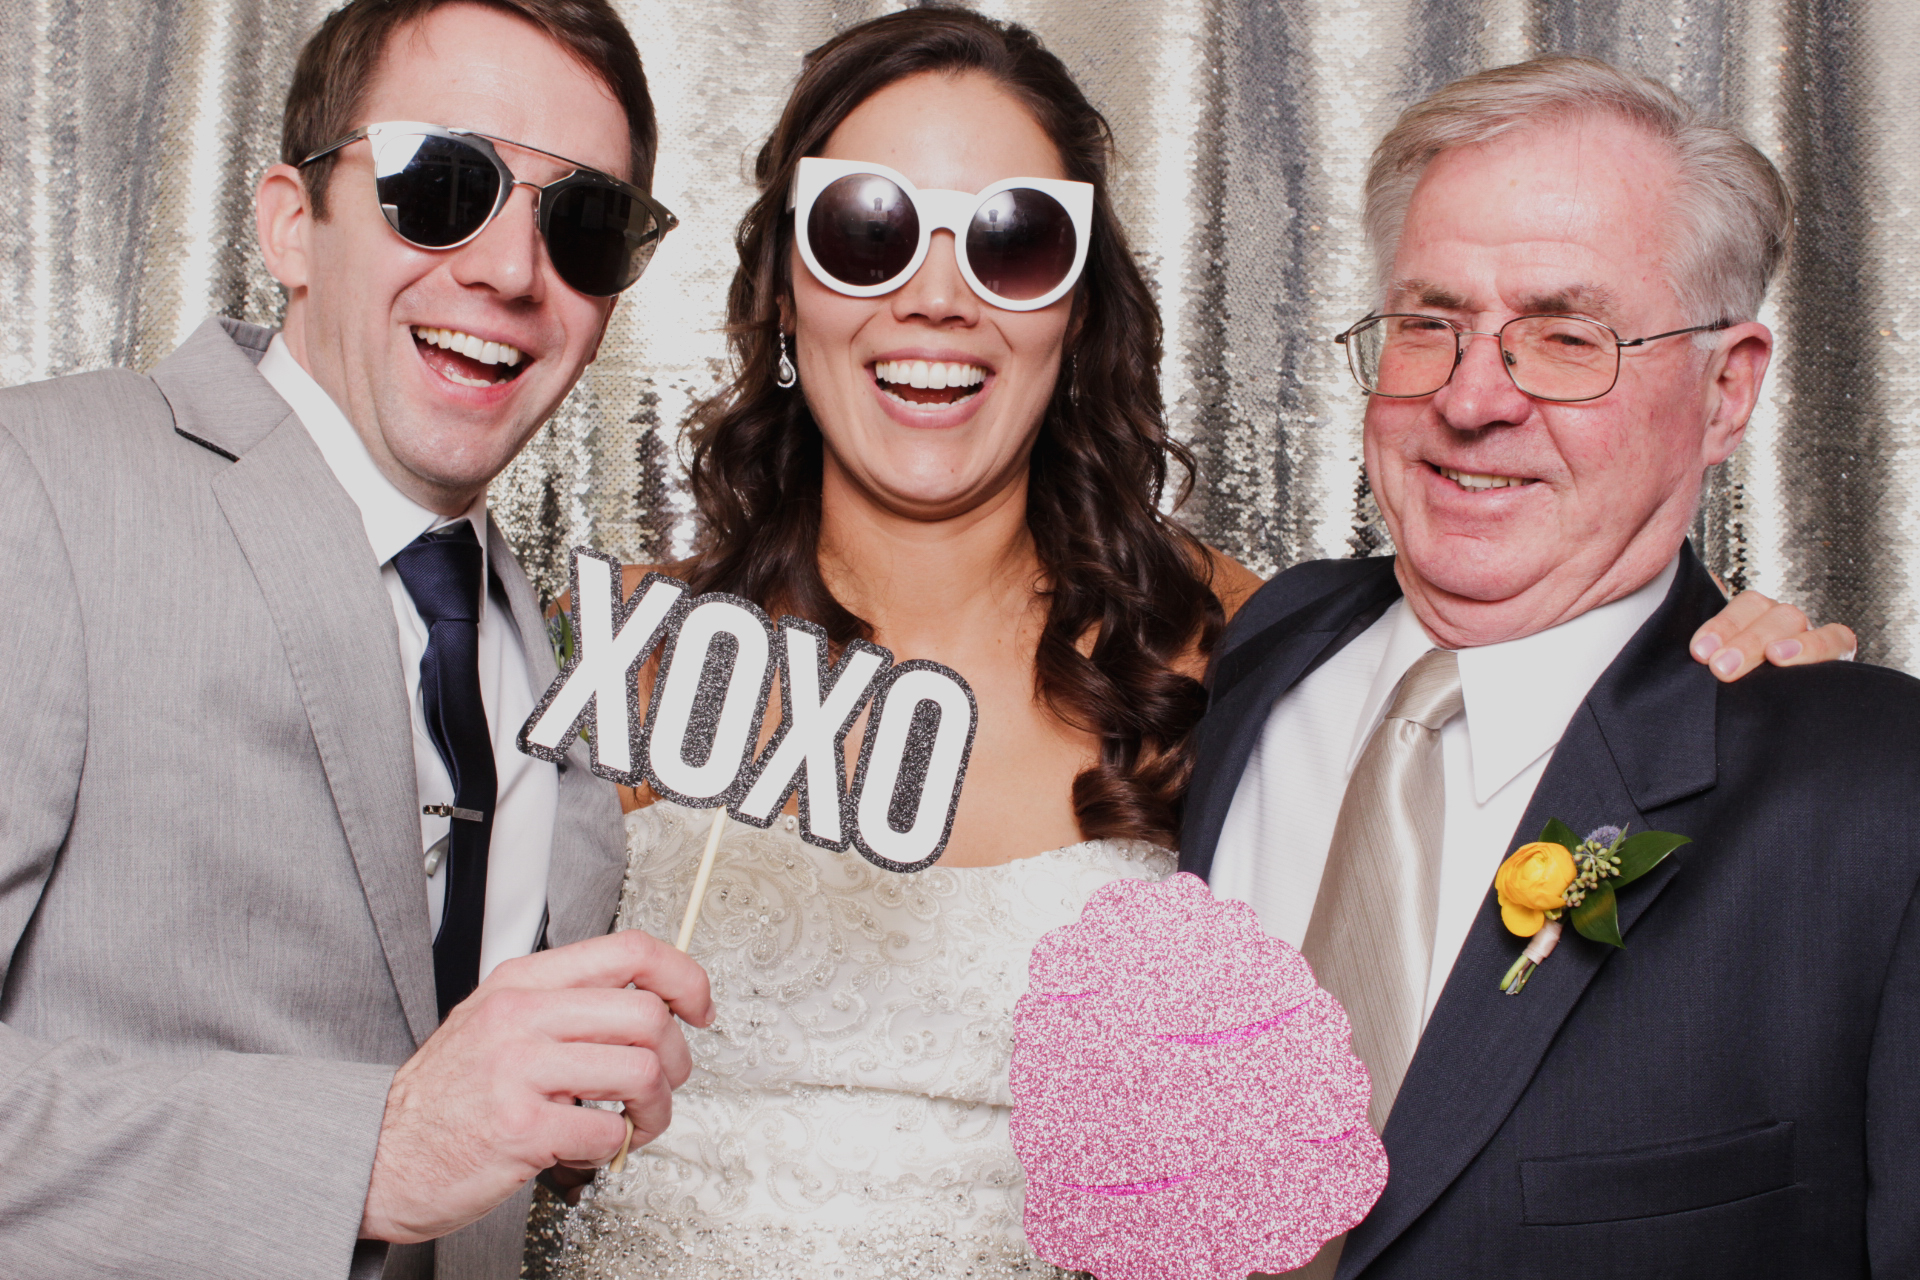 The Mill at Fine Creek Wedding photo booth